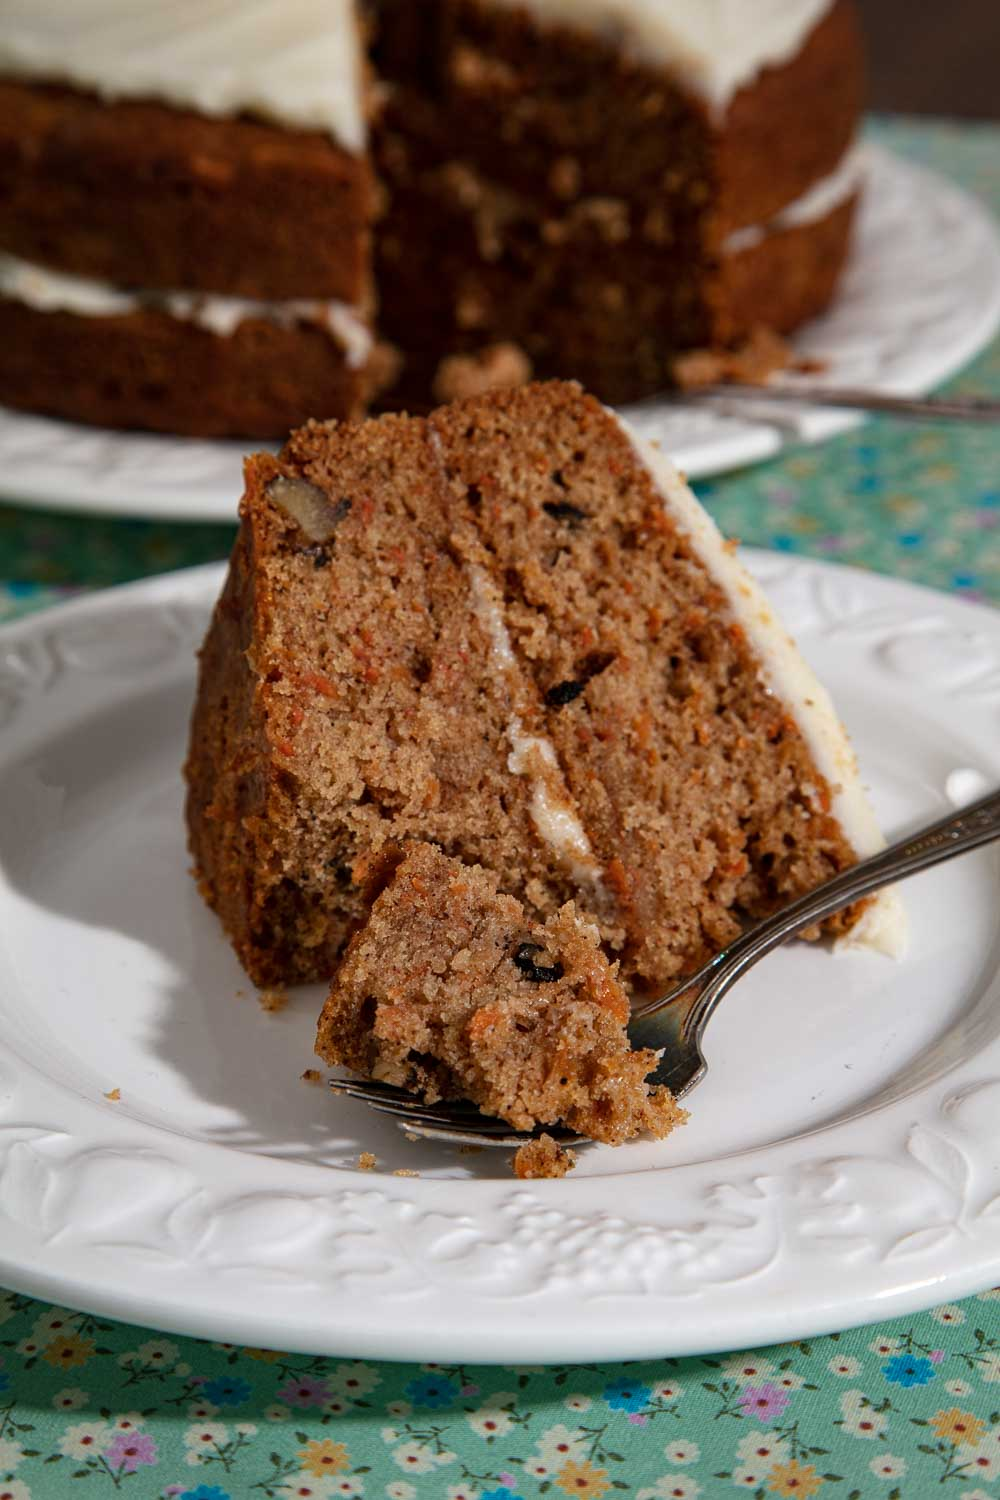 A slice of vegan carrot cake with a forkful ready to eat.